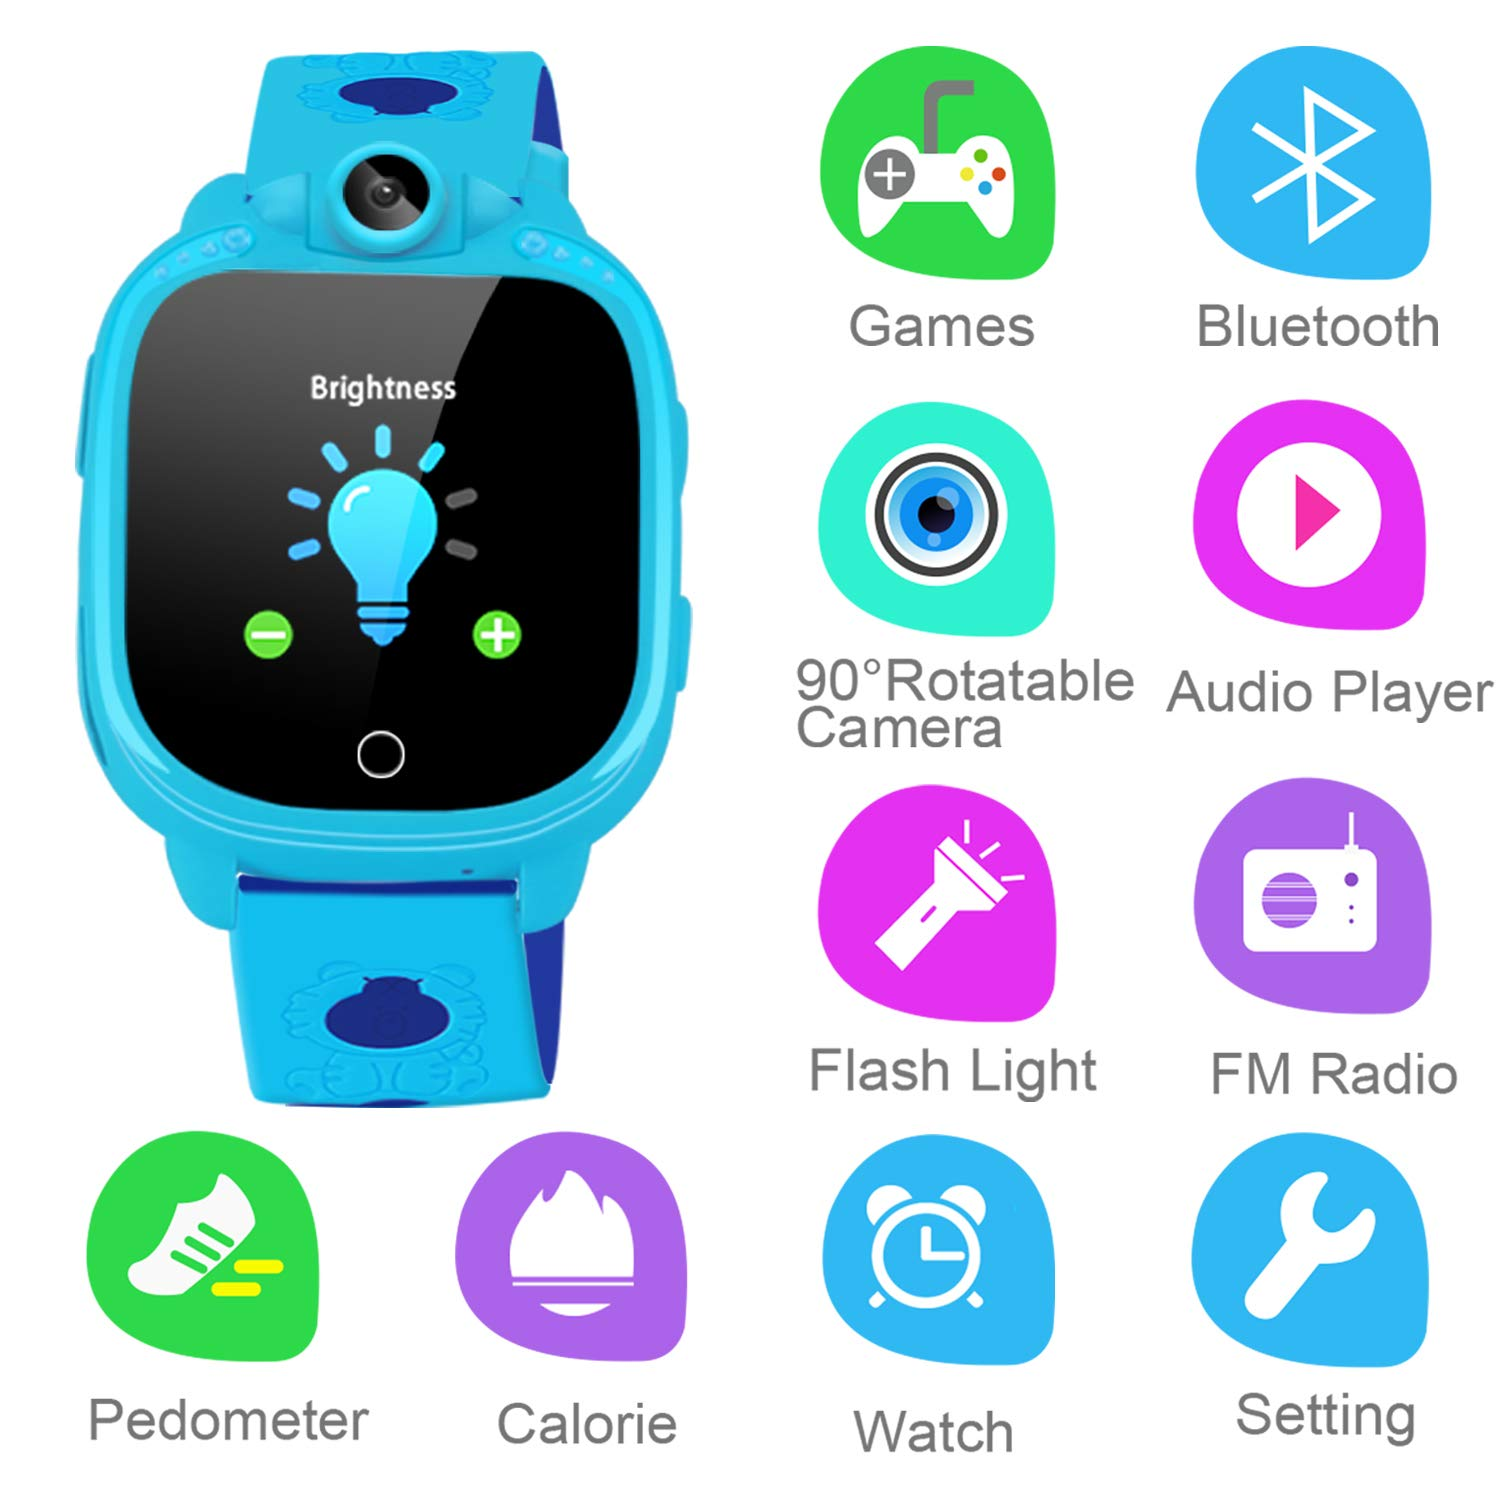 Prograce Smartwatch for Kids with 90°Rotatable Camera